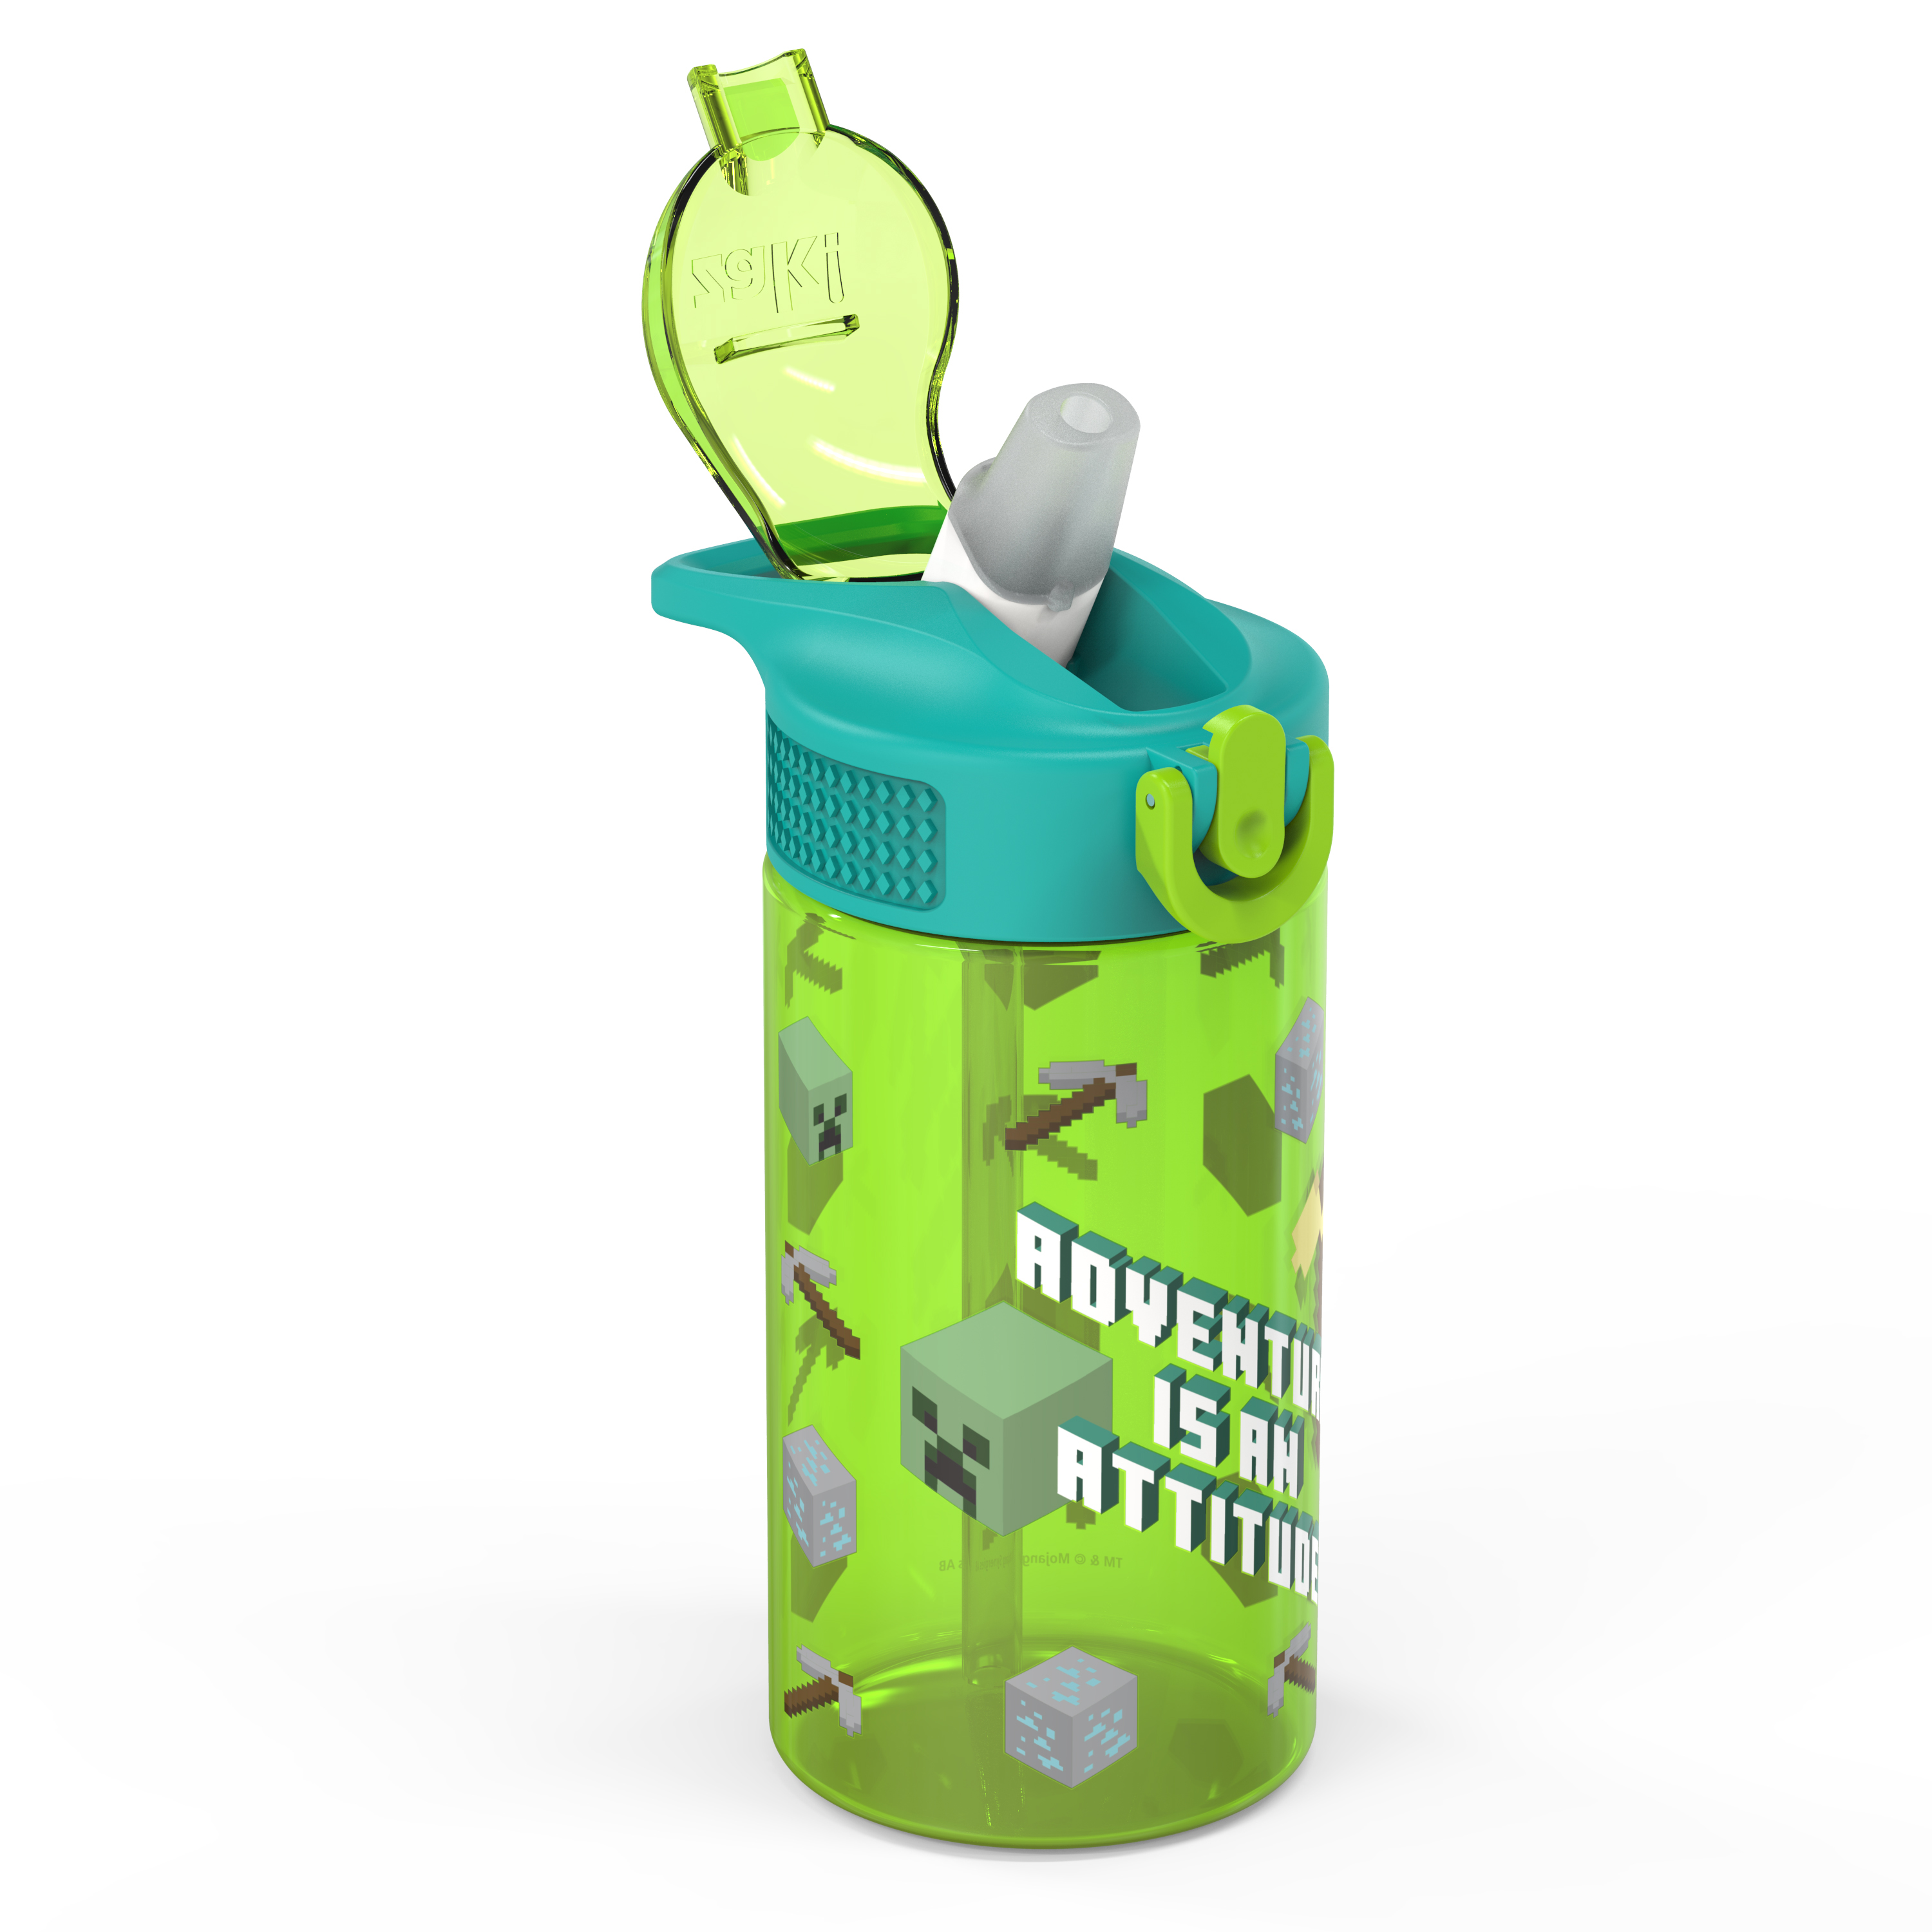 Minecraft 16 ounce Reusable Plastic Water Bottle with Straw, Creeper, 2-piece set slideshow image 3